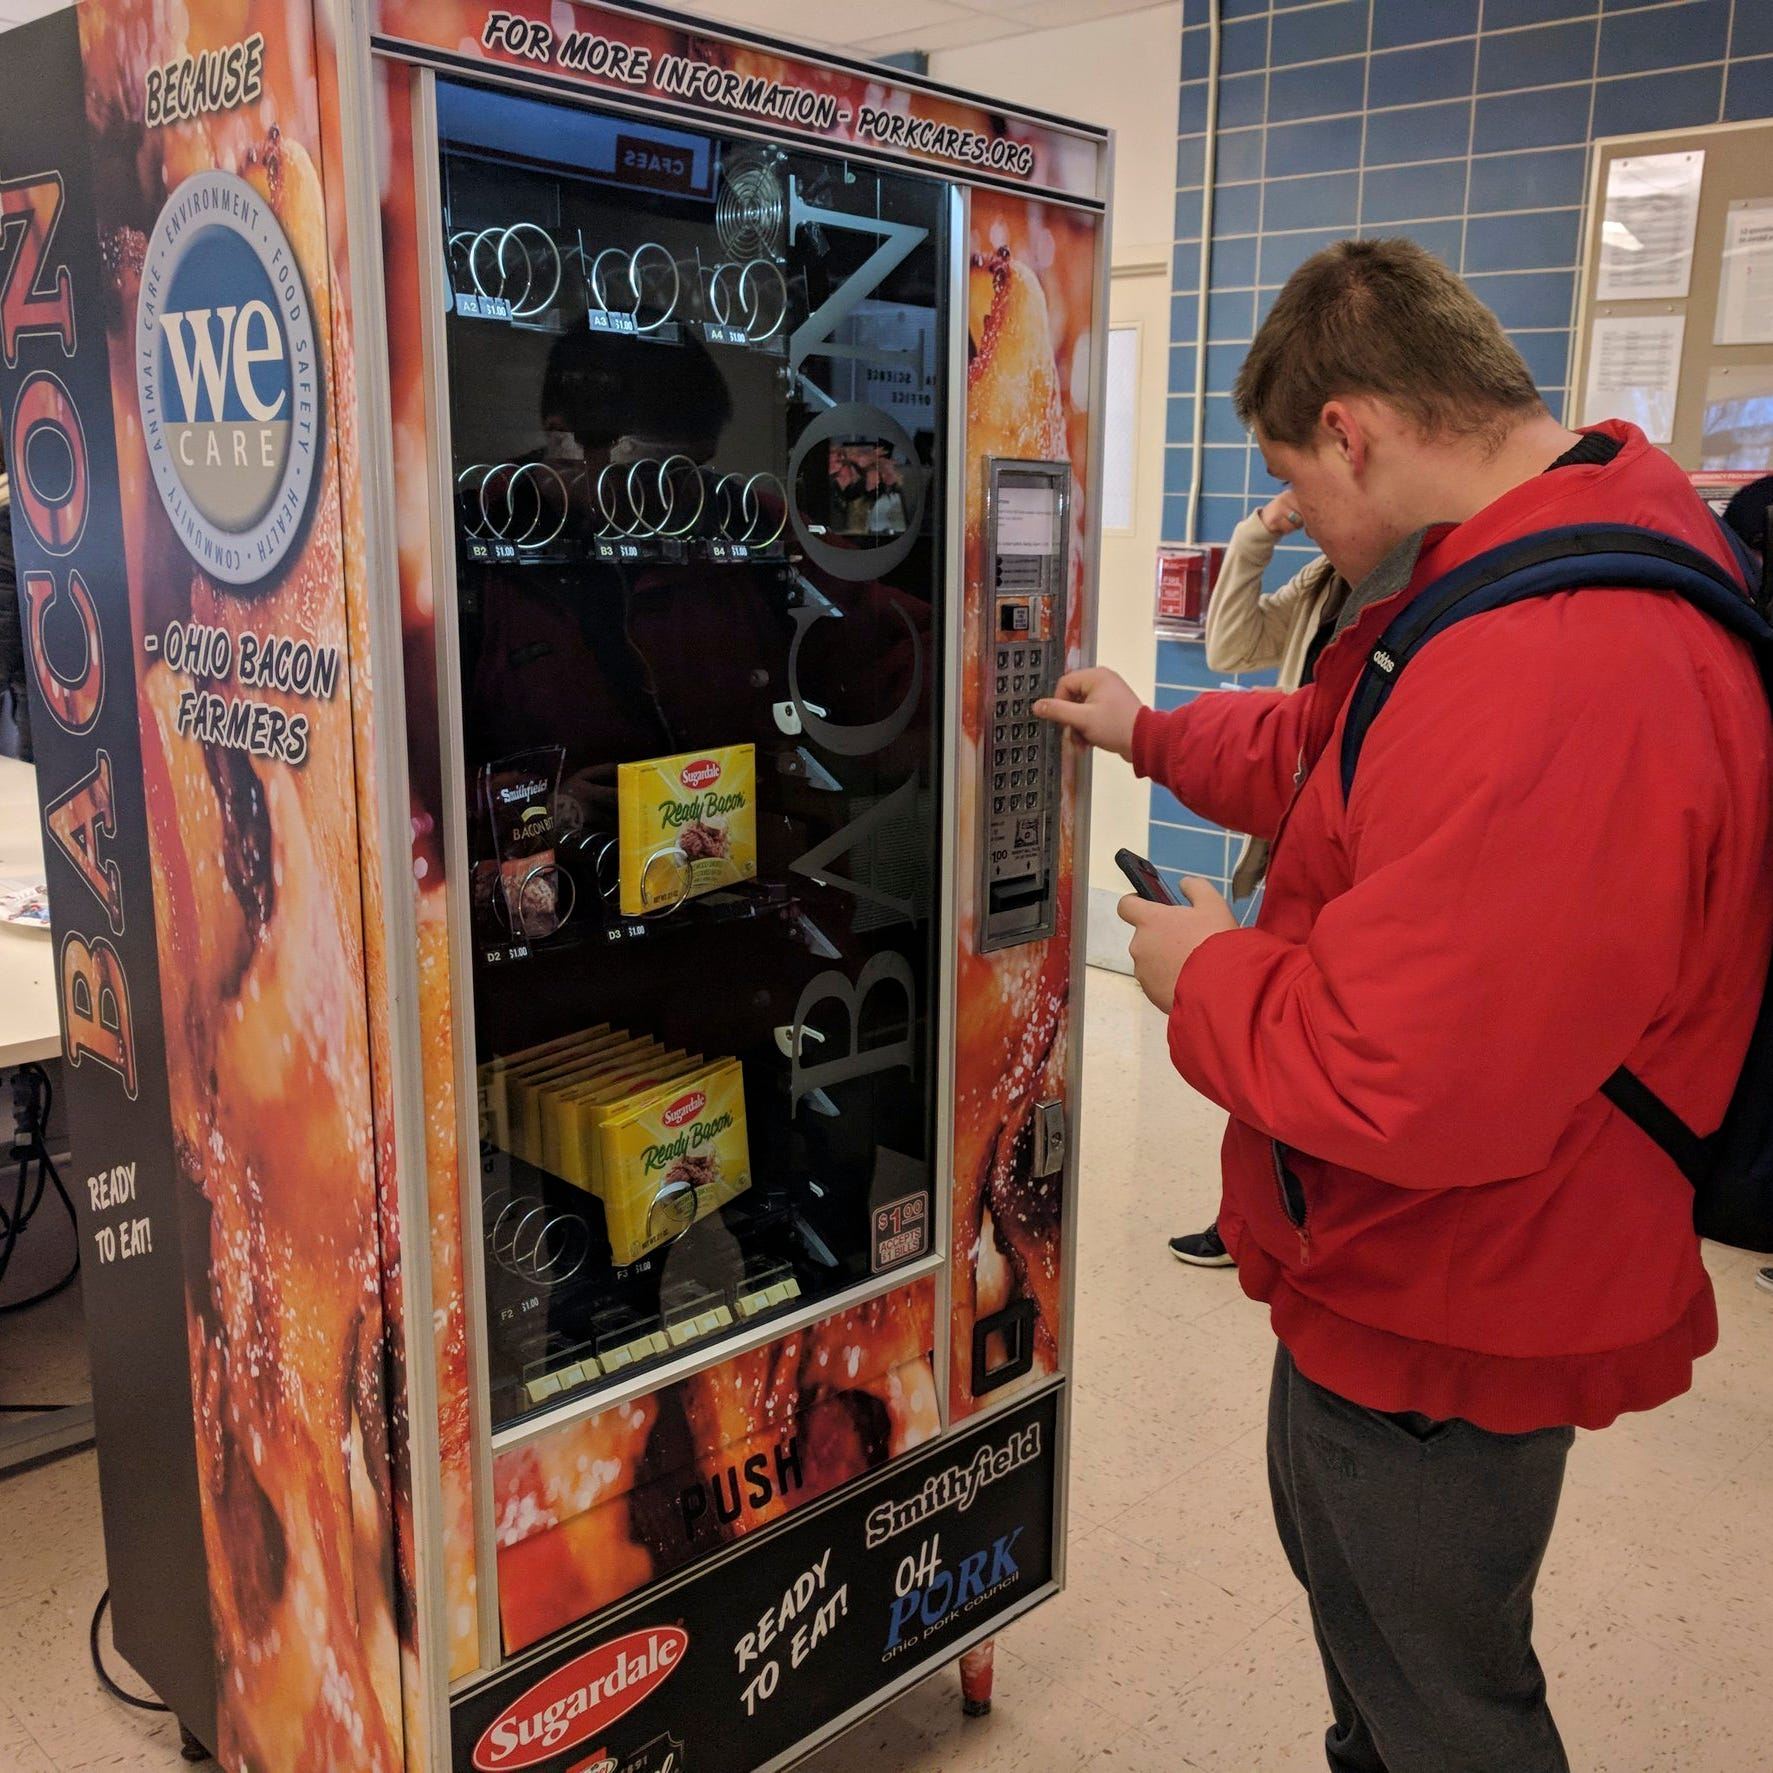 Vending machine dispenses bacon at Ohio State University campus